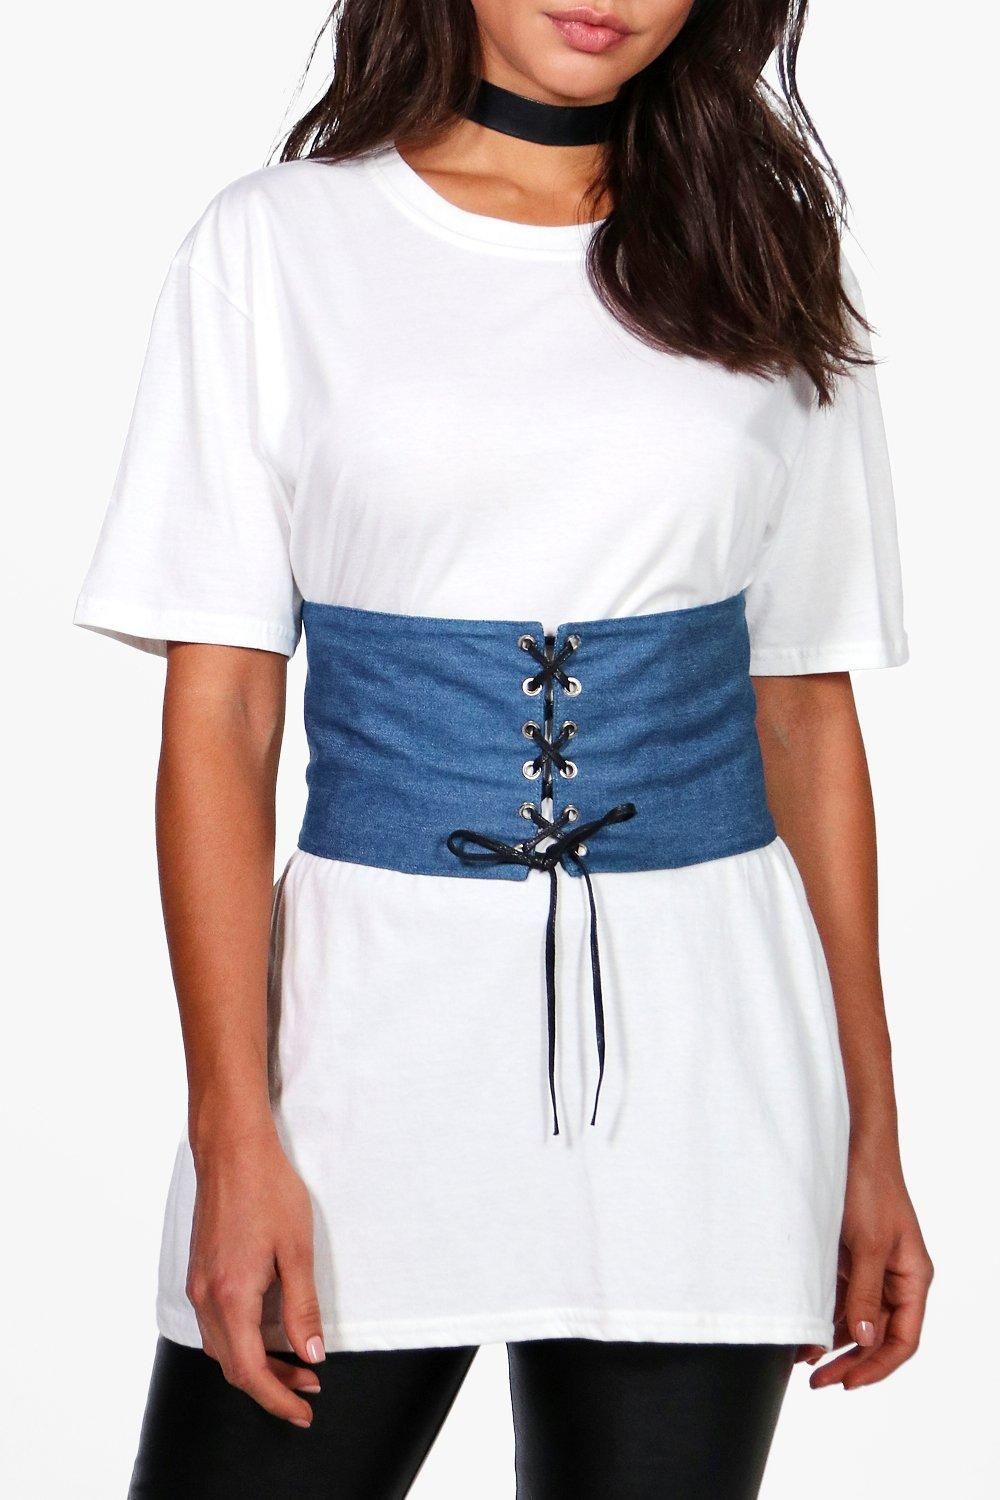 Denim Lace Up Corset Belt - blue - Tilly Denim Lac